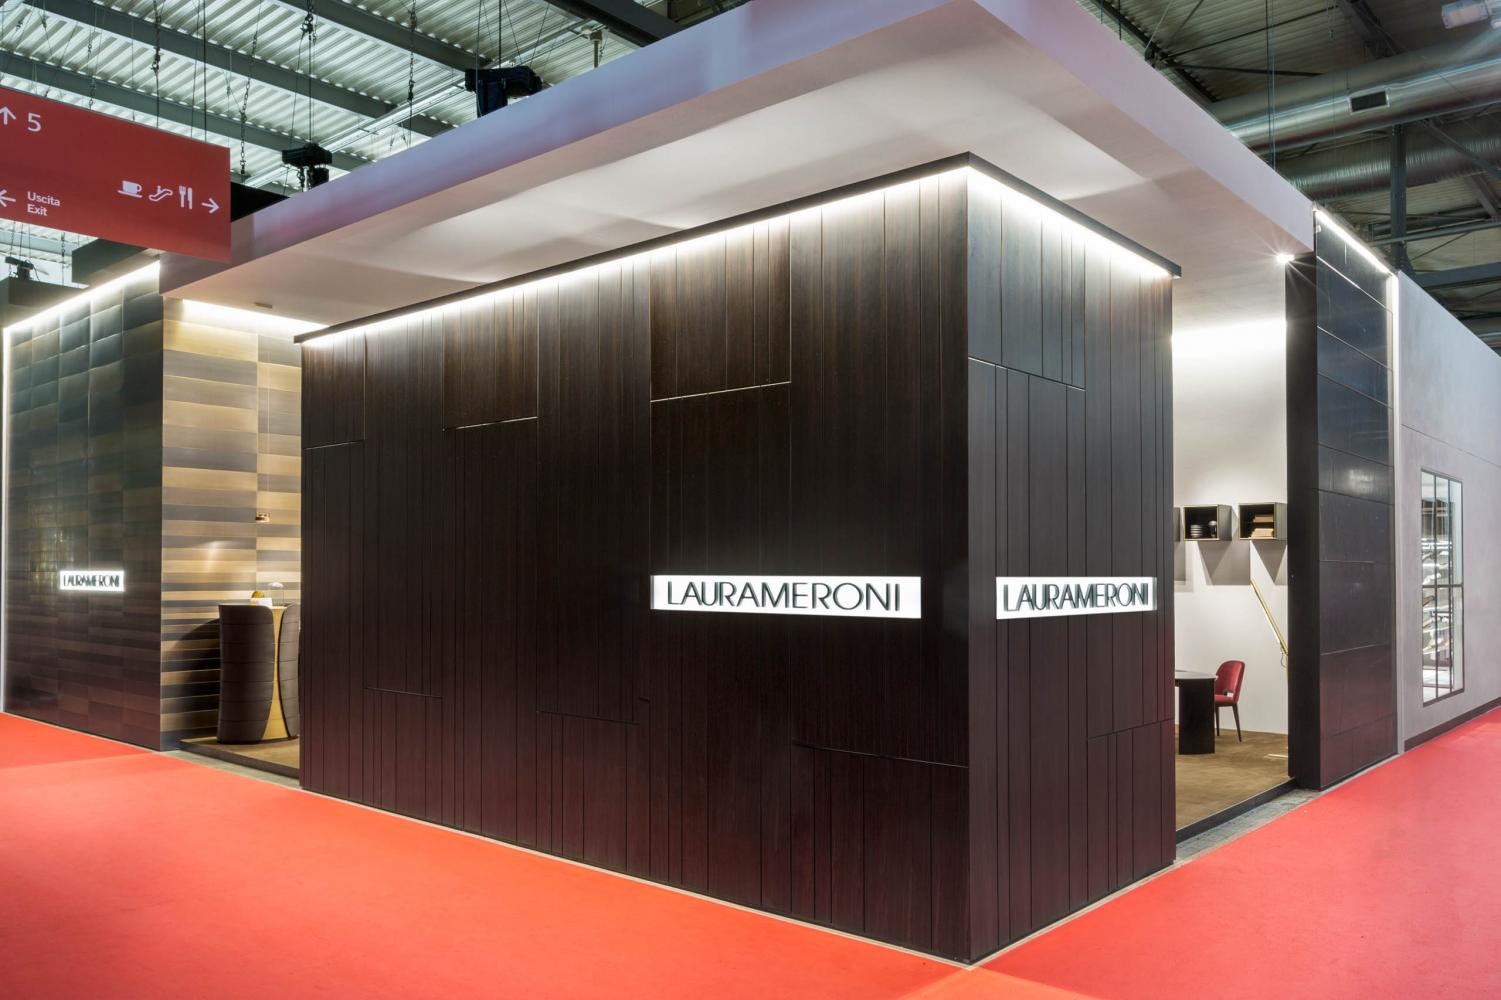 News salone del mobile 2018 laurameroni for Salone del mobile